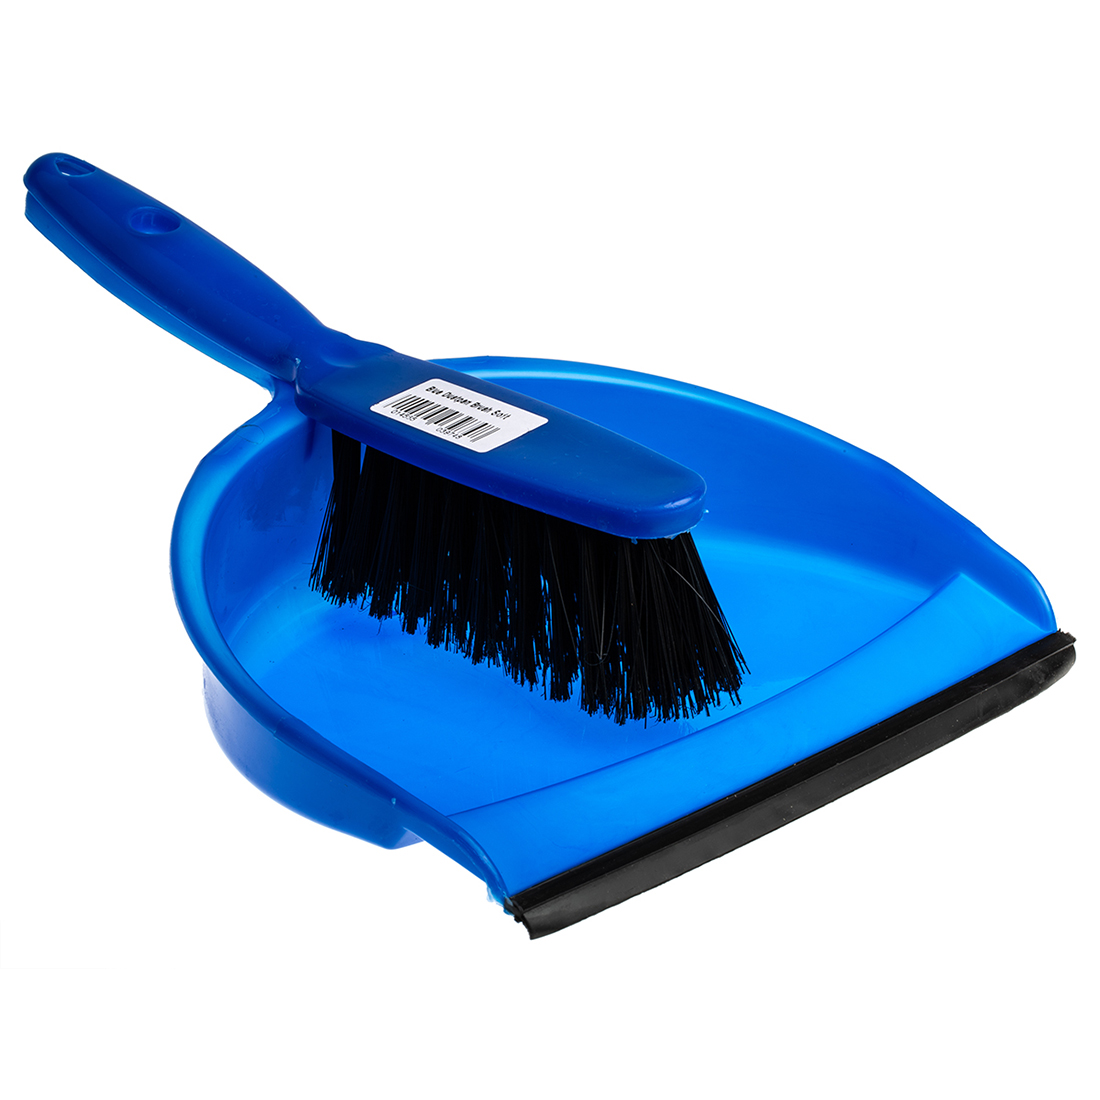 RS PRO Blue Dustpan & Brush for Dust with brush included